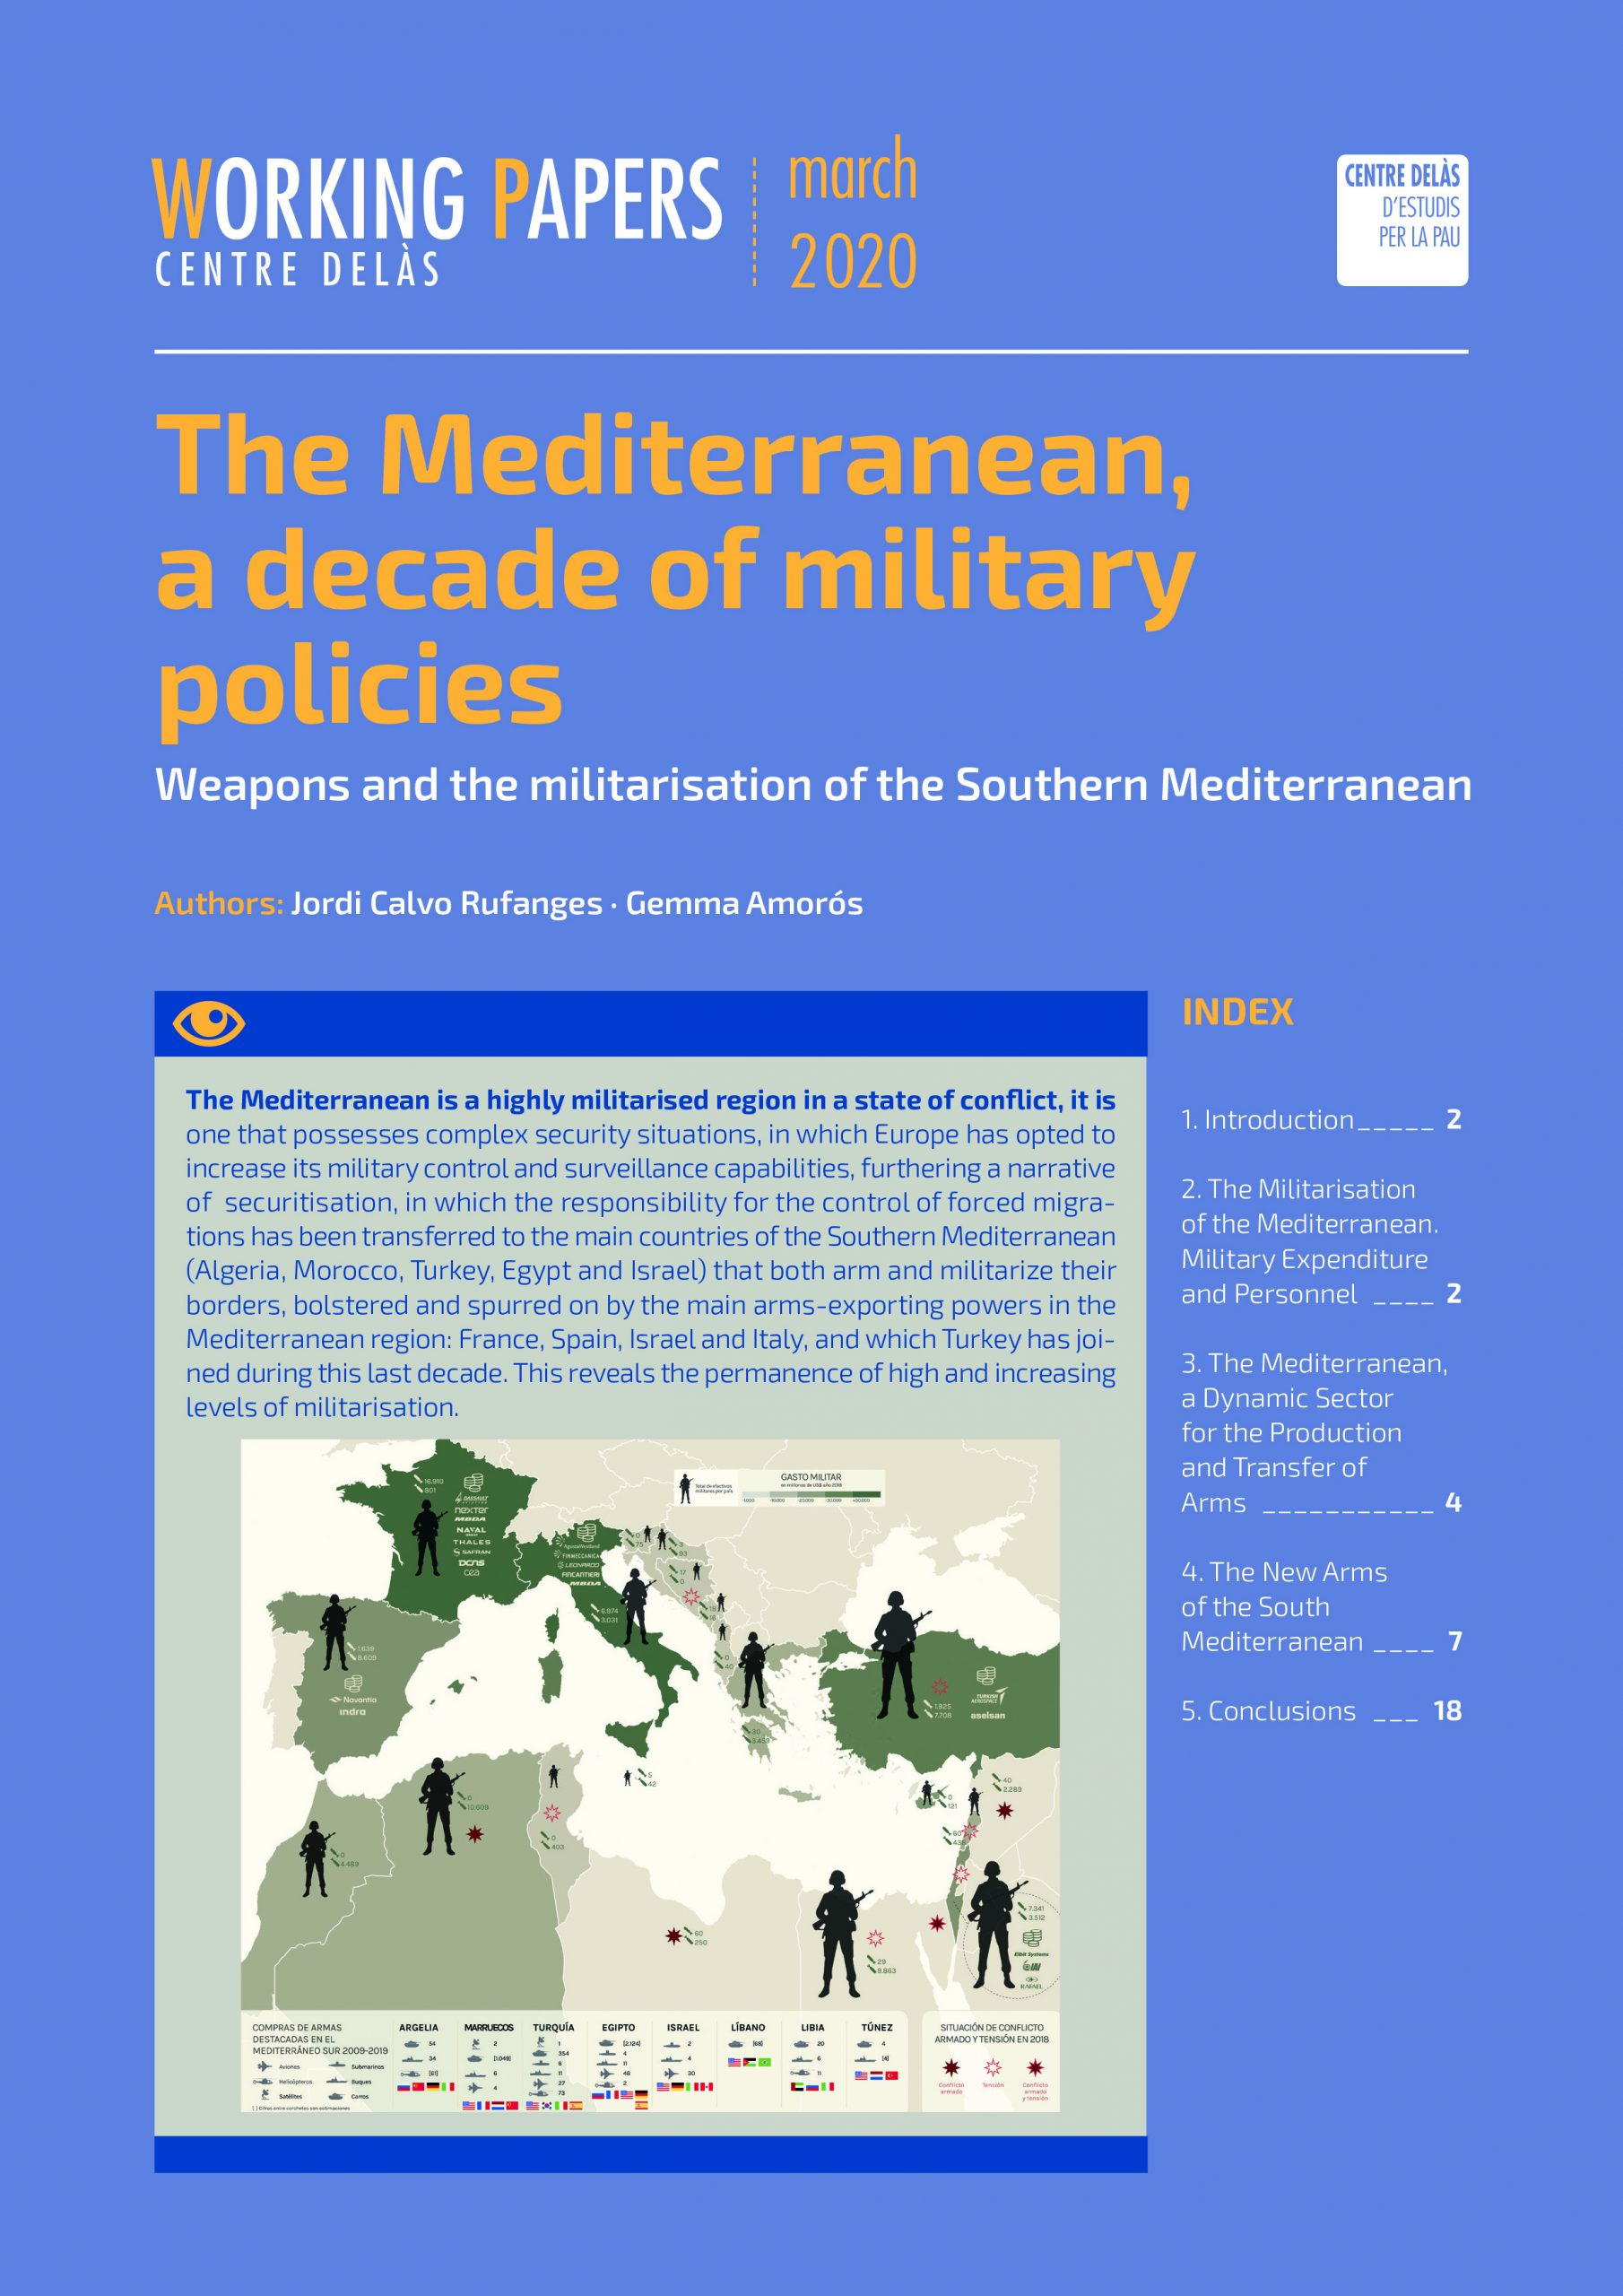 """Working Paper """"The Mediterranean, a decade of military policies. Weapons and the militarisation of the Southern Mediterranean"""""""